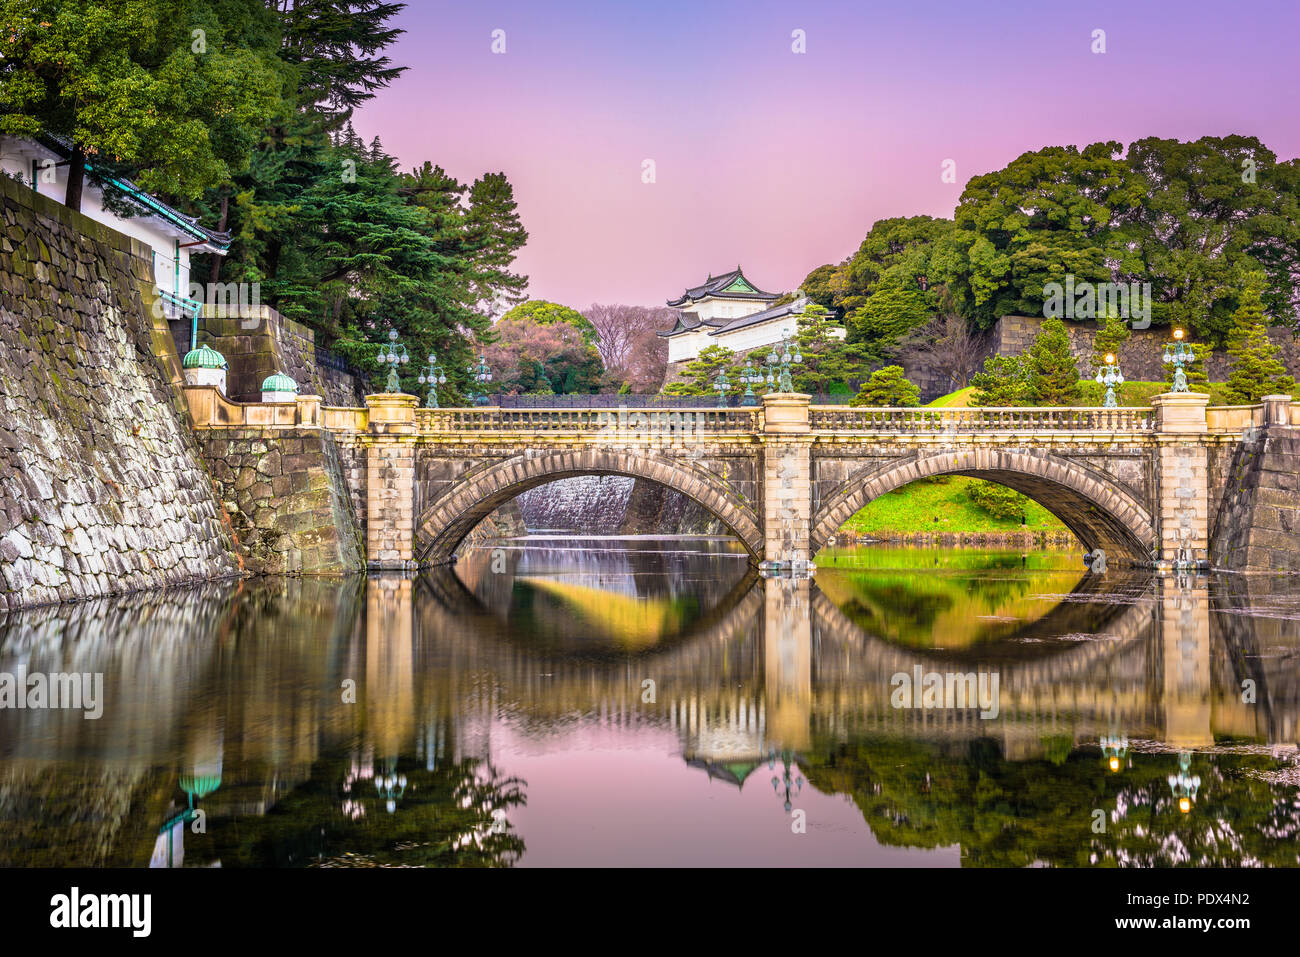 Tokyo, Japan at the Imperial Palace moat and bridge at dawn. - Stock Image